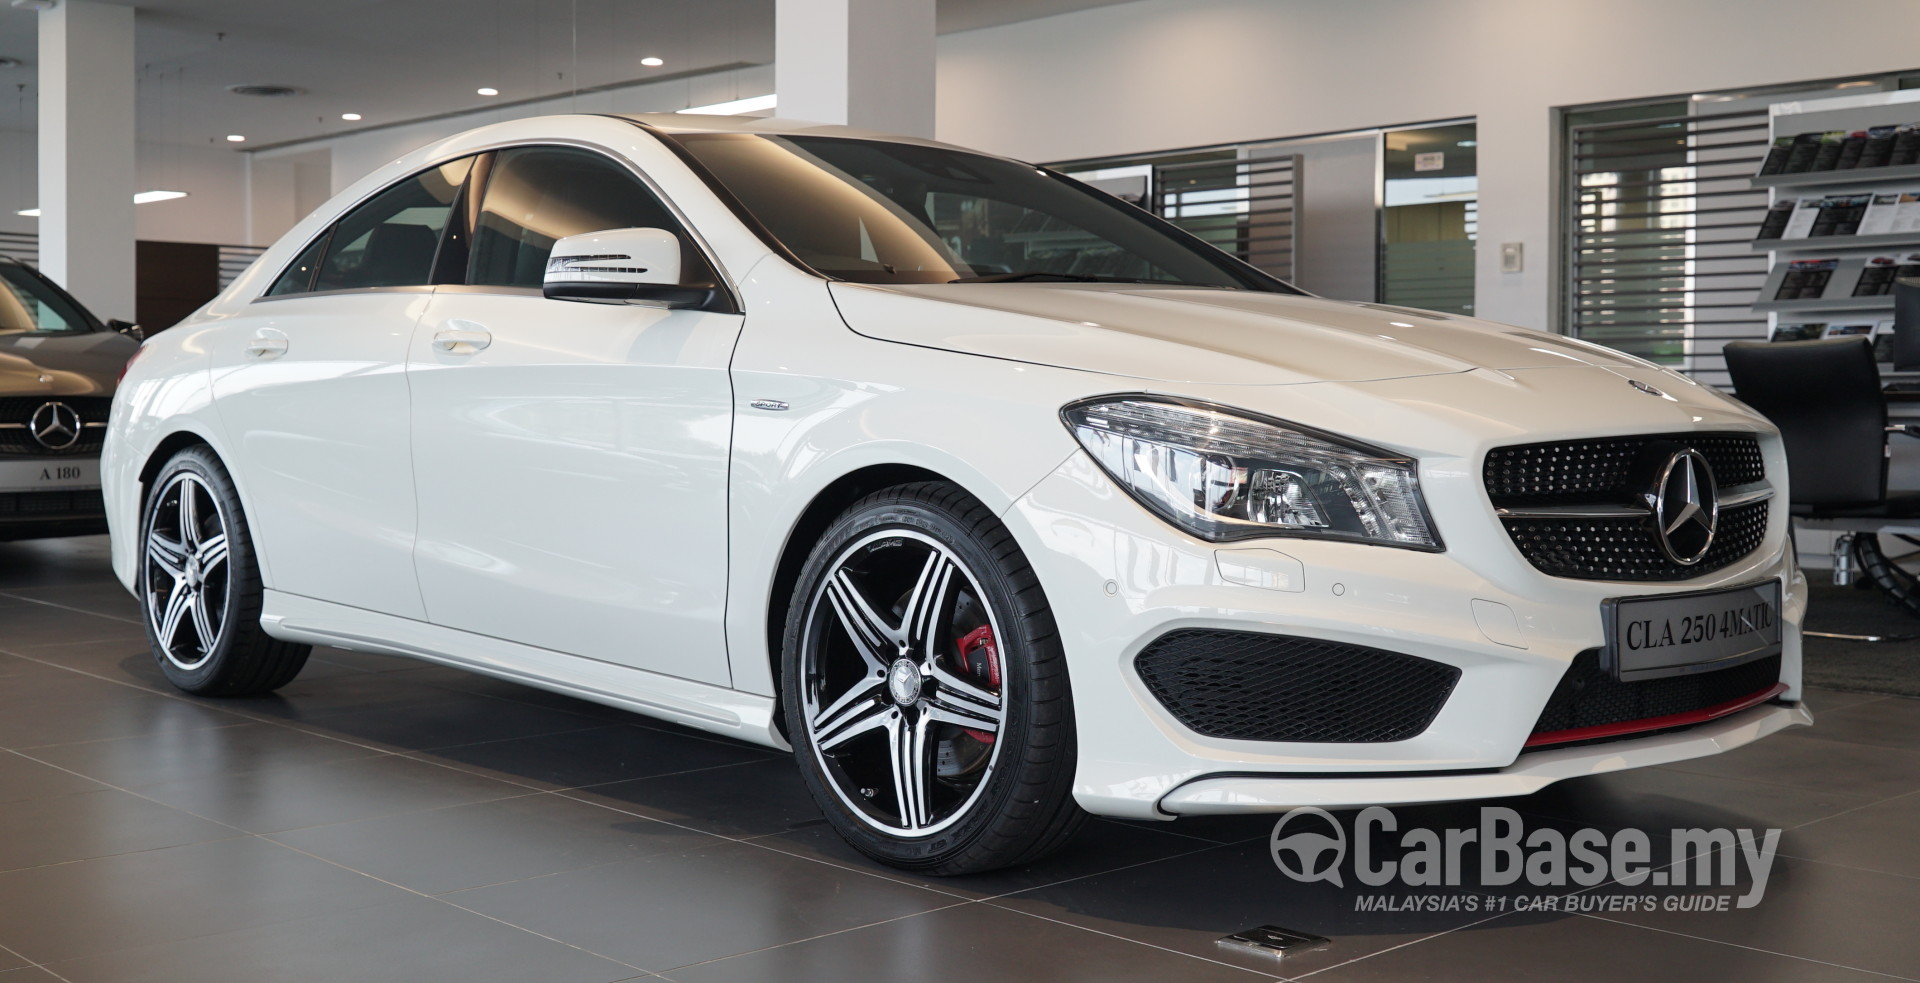 Mercedes benz cla c117 2014 exterior image 28403 in for Mercedes benz cla 2014 price